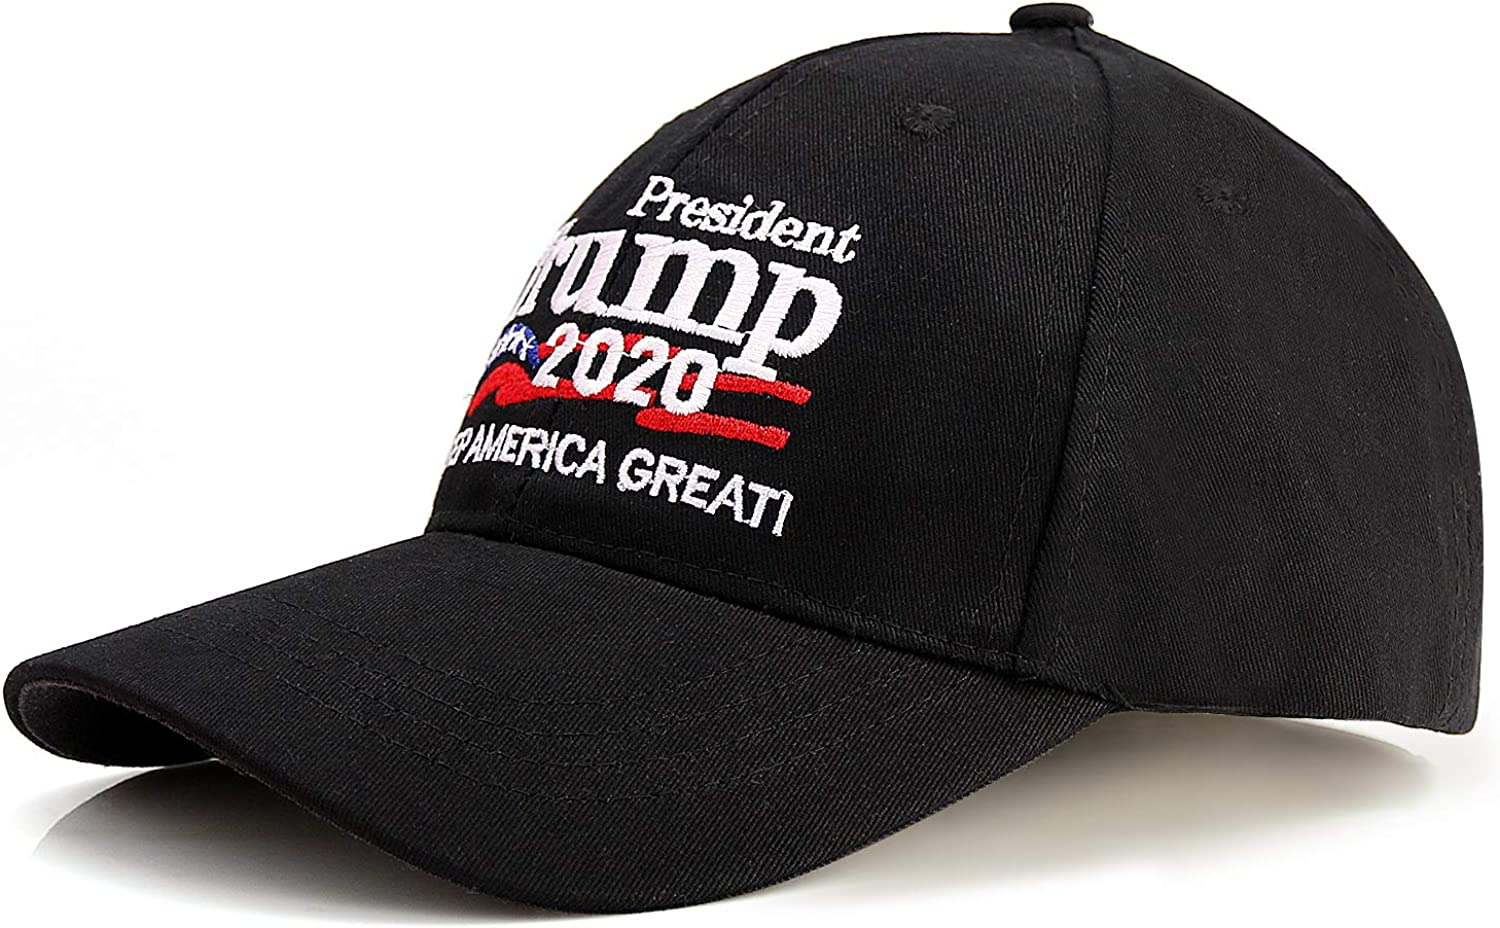 Wholesale Pack of 3 Trump 2020 Oval Campaign Election Bike Hat Cap lapel Pin